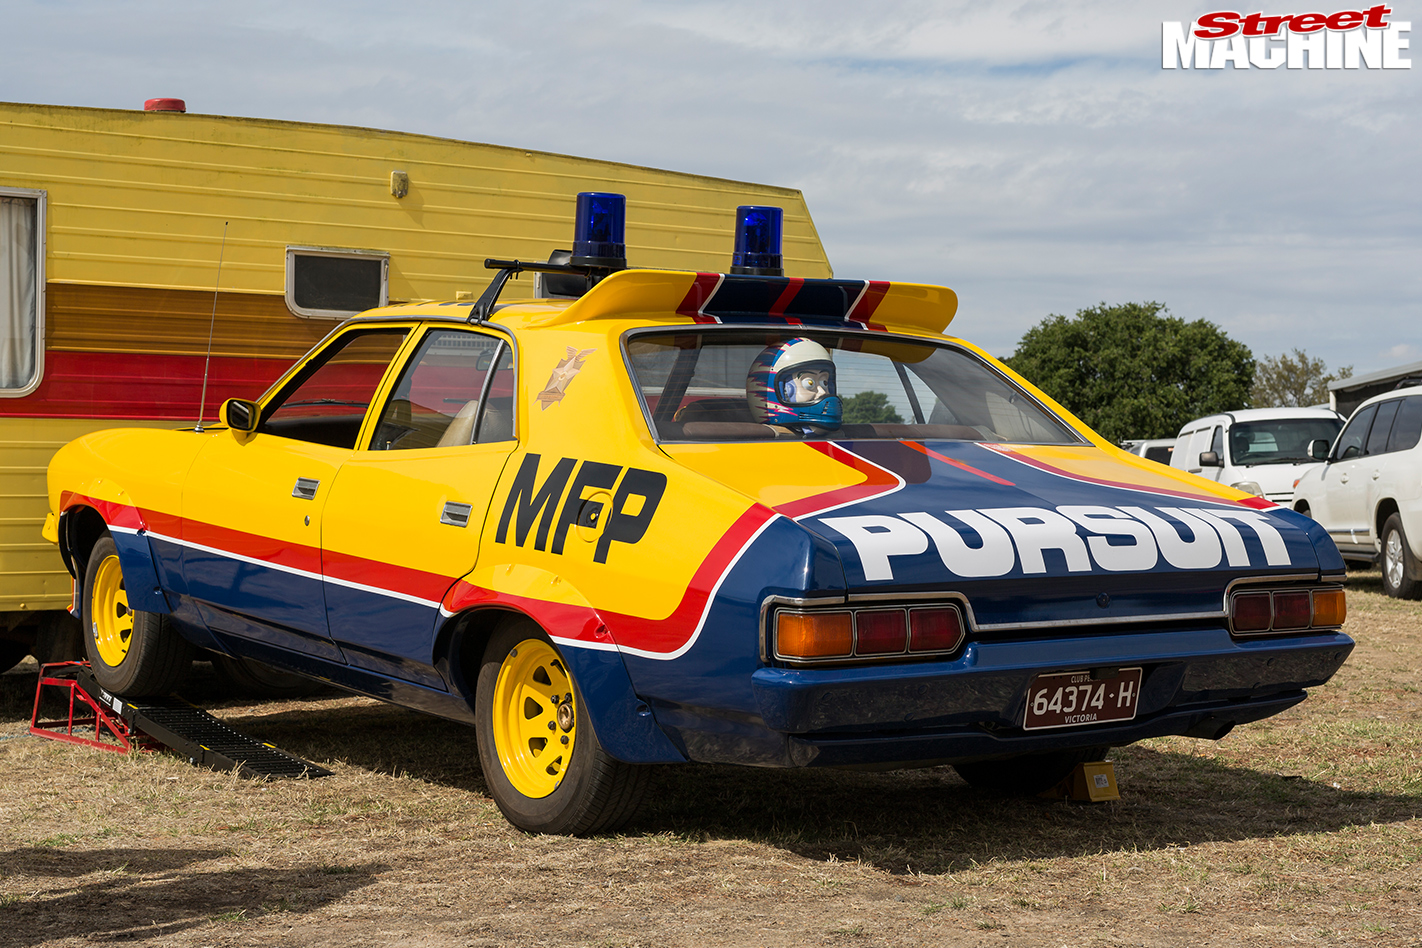 Mad -max -ford -falcon -pursuit -falcon -2